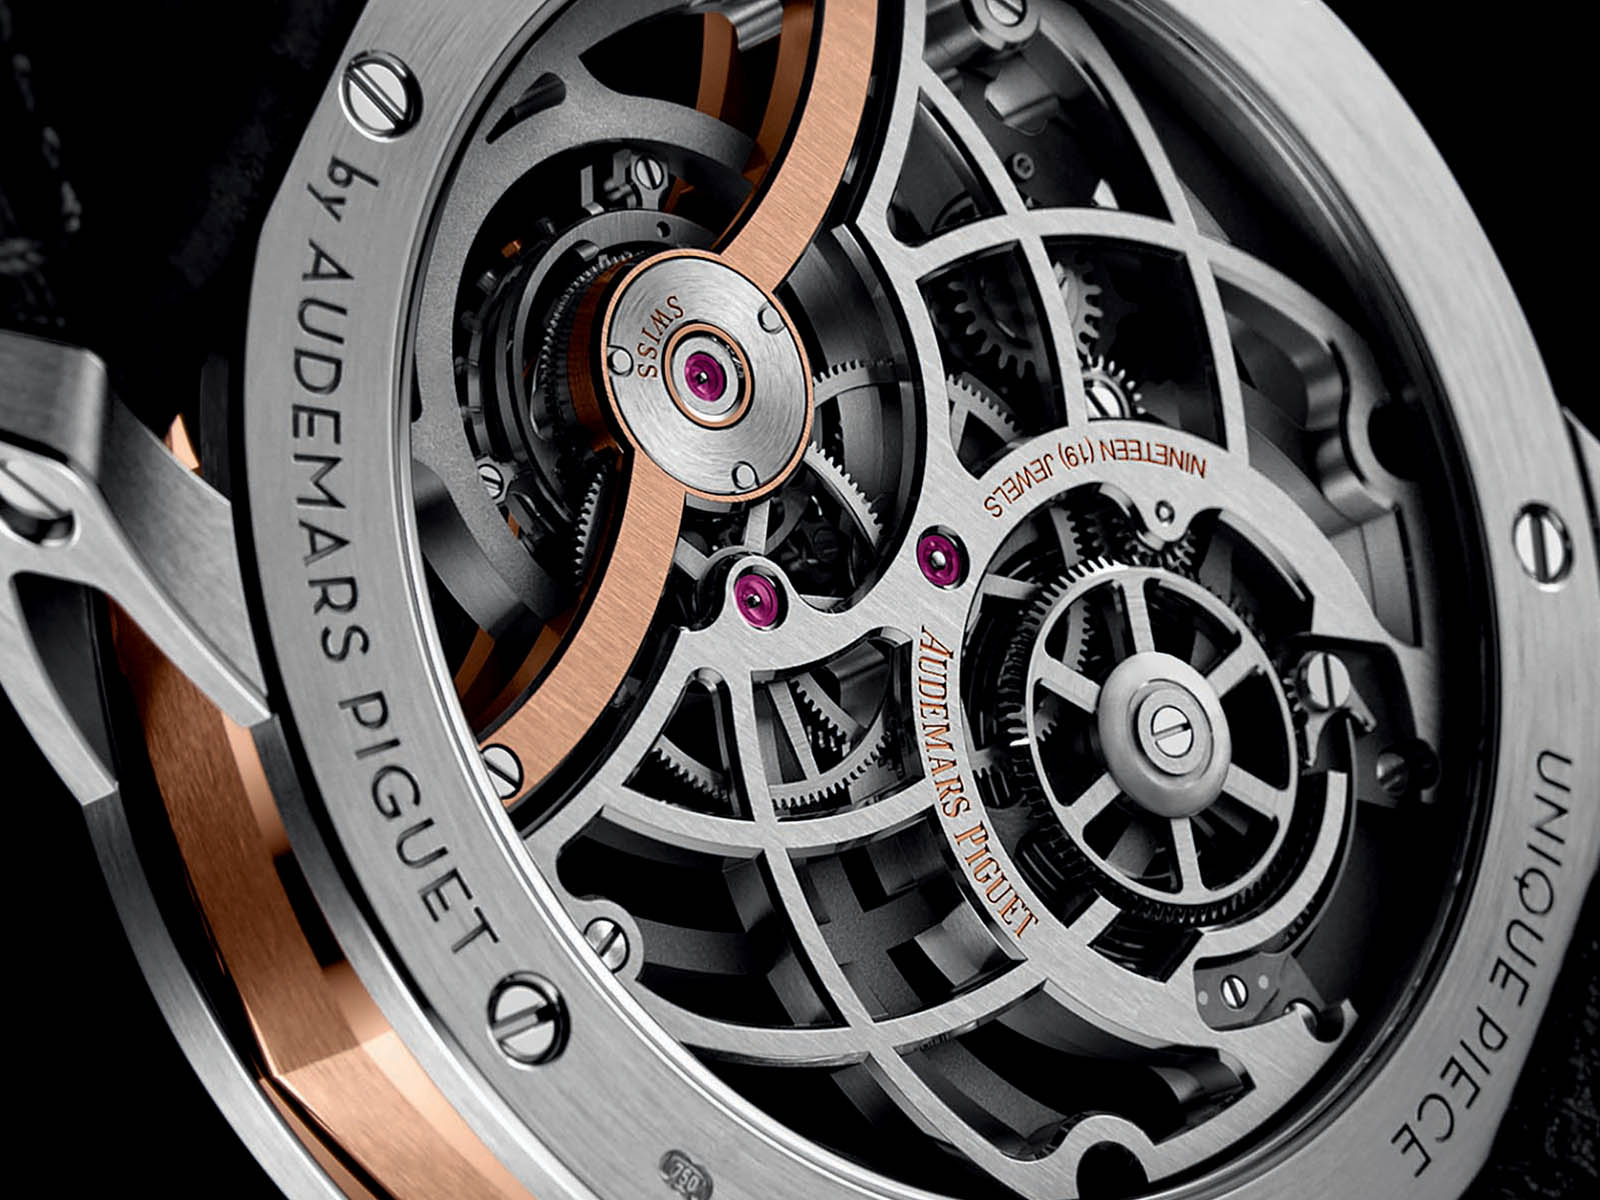 26600cr-oo-d002cr-99-audemars-piguet-code-11-59-by-audemars-piguet-tourbillon-openworked-only-watch-edition-3.jpg